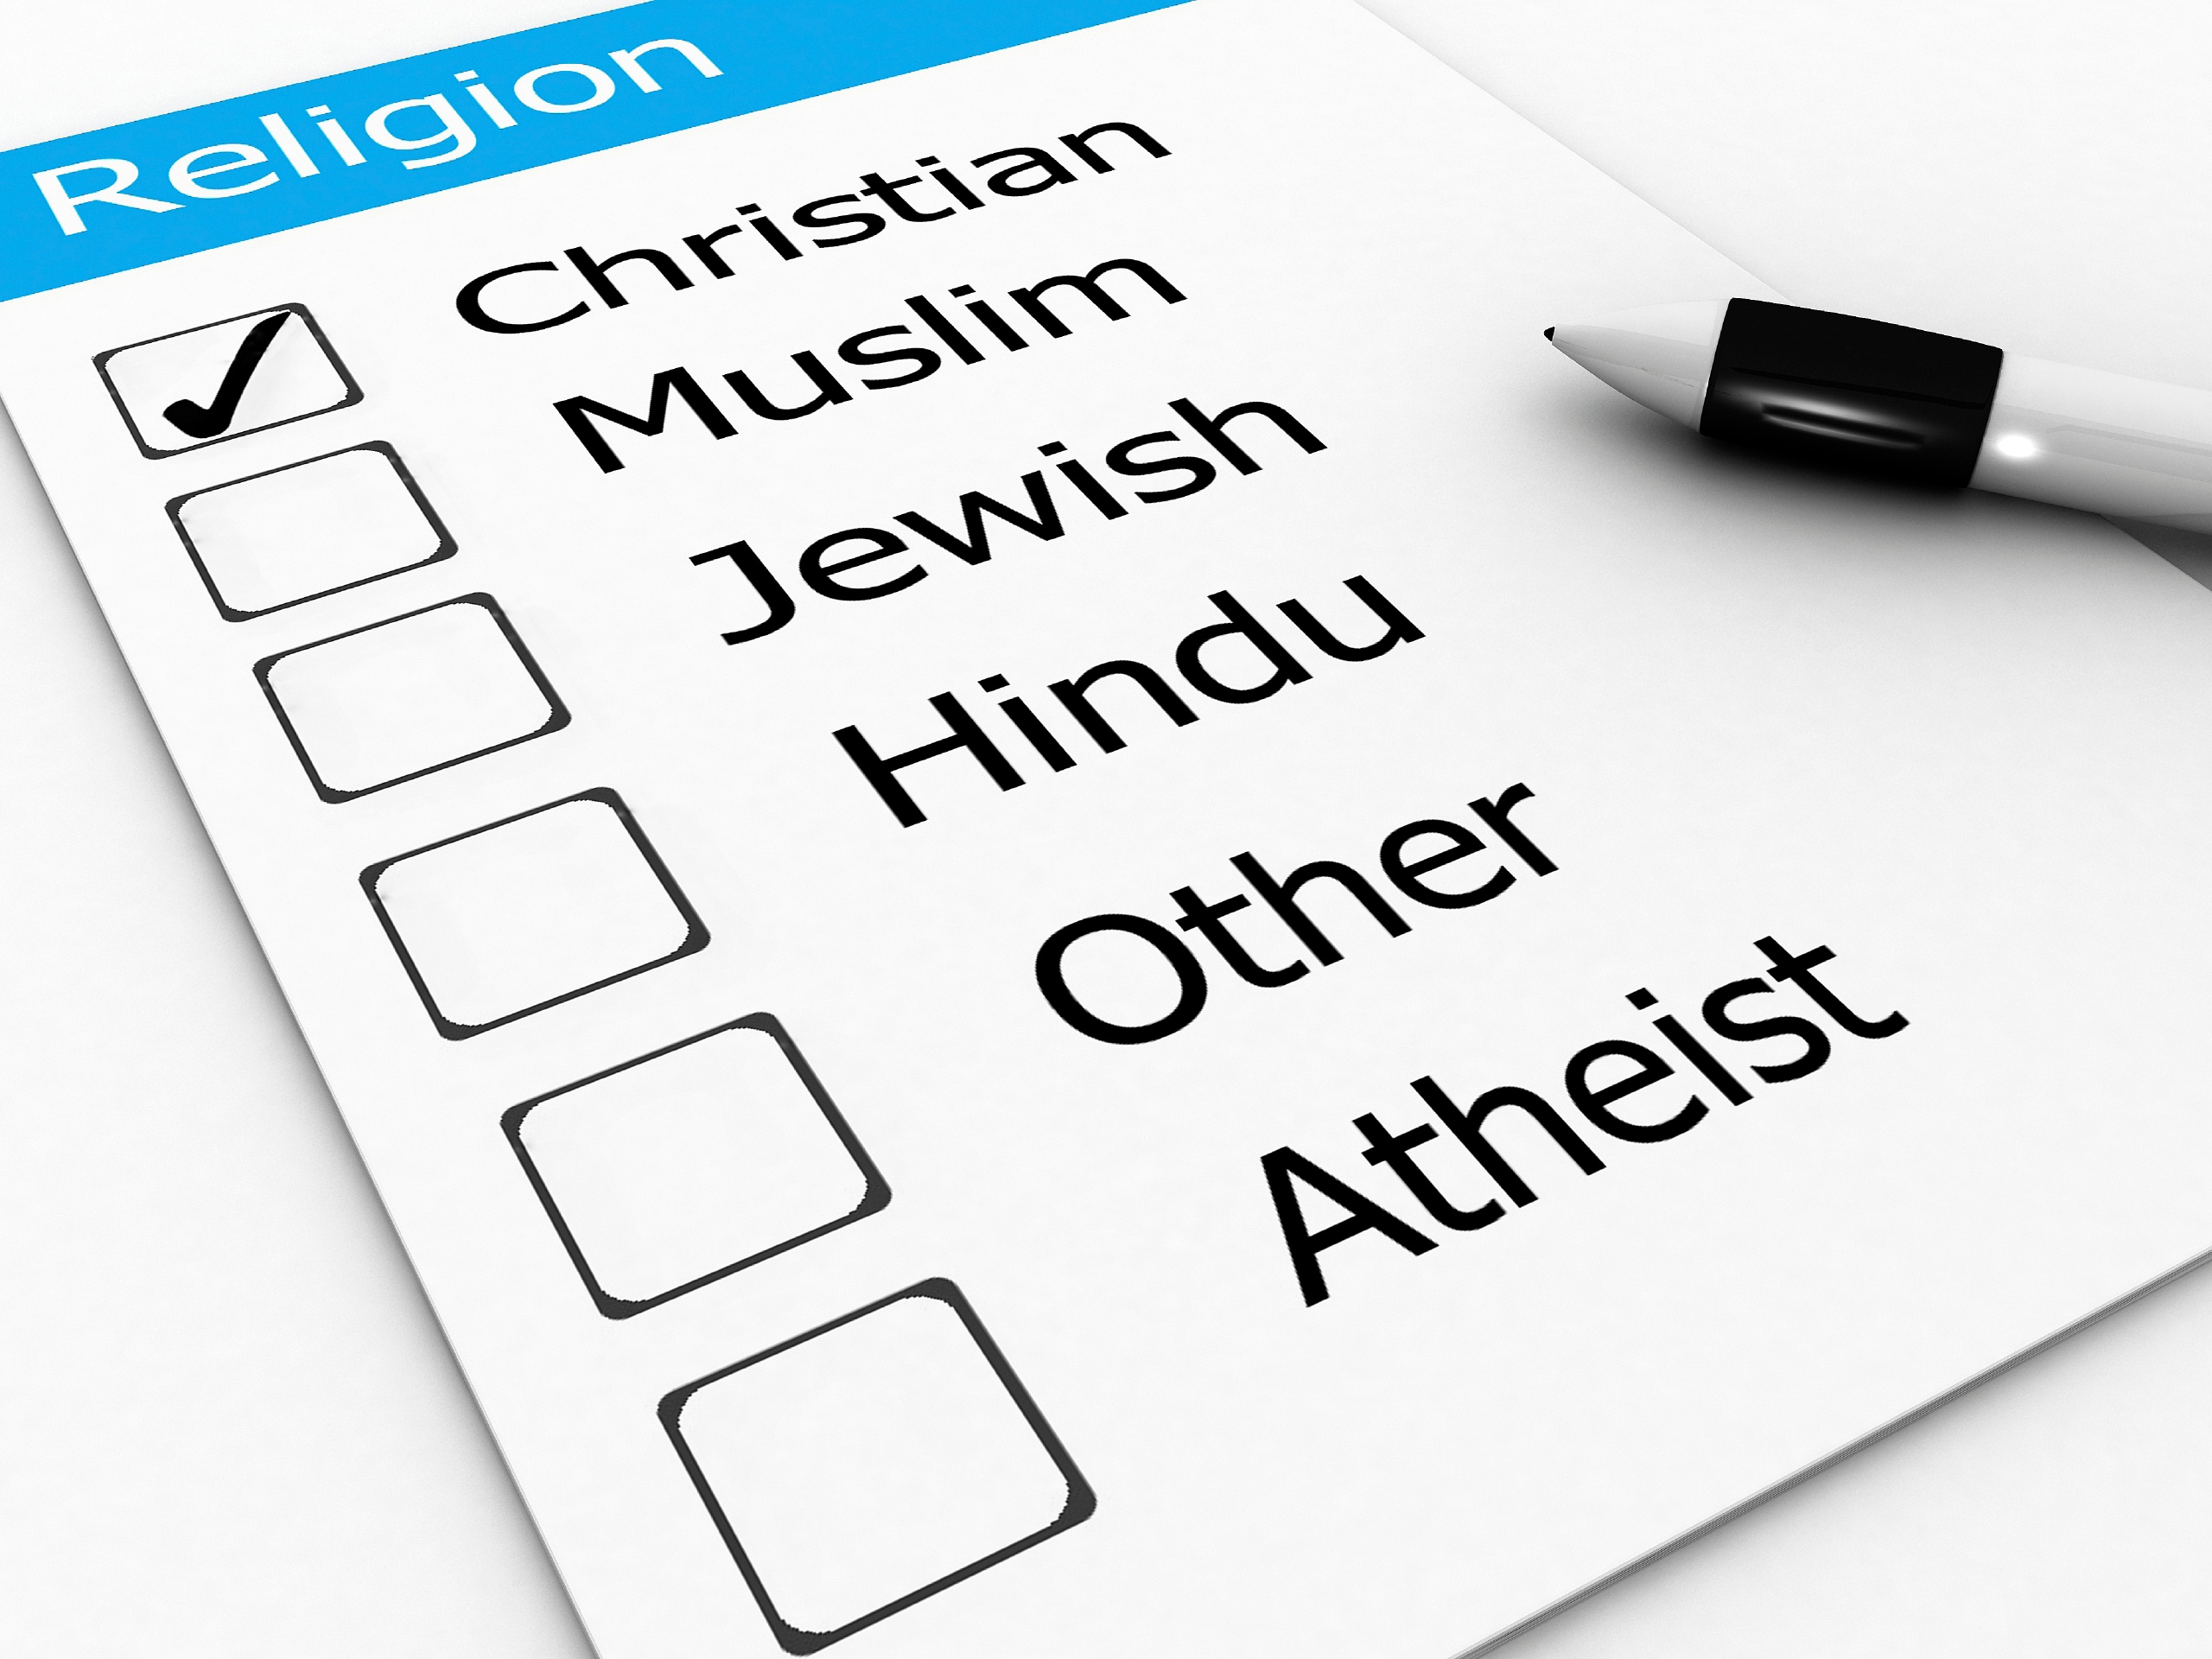 Dr. Mark Kalthoff comments on the extent to which religious unity supports political unity throughout history